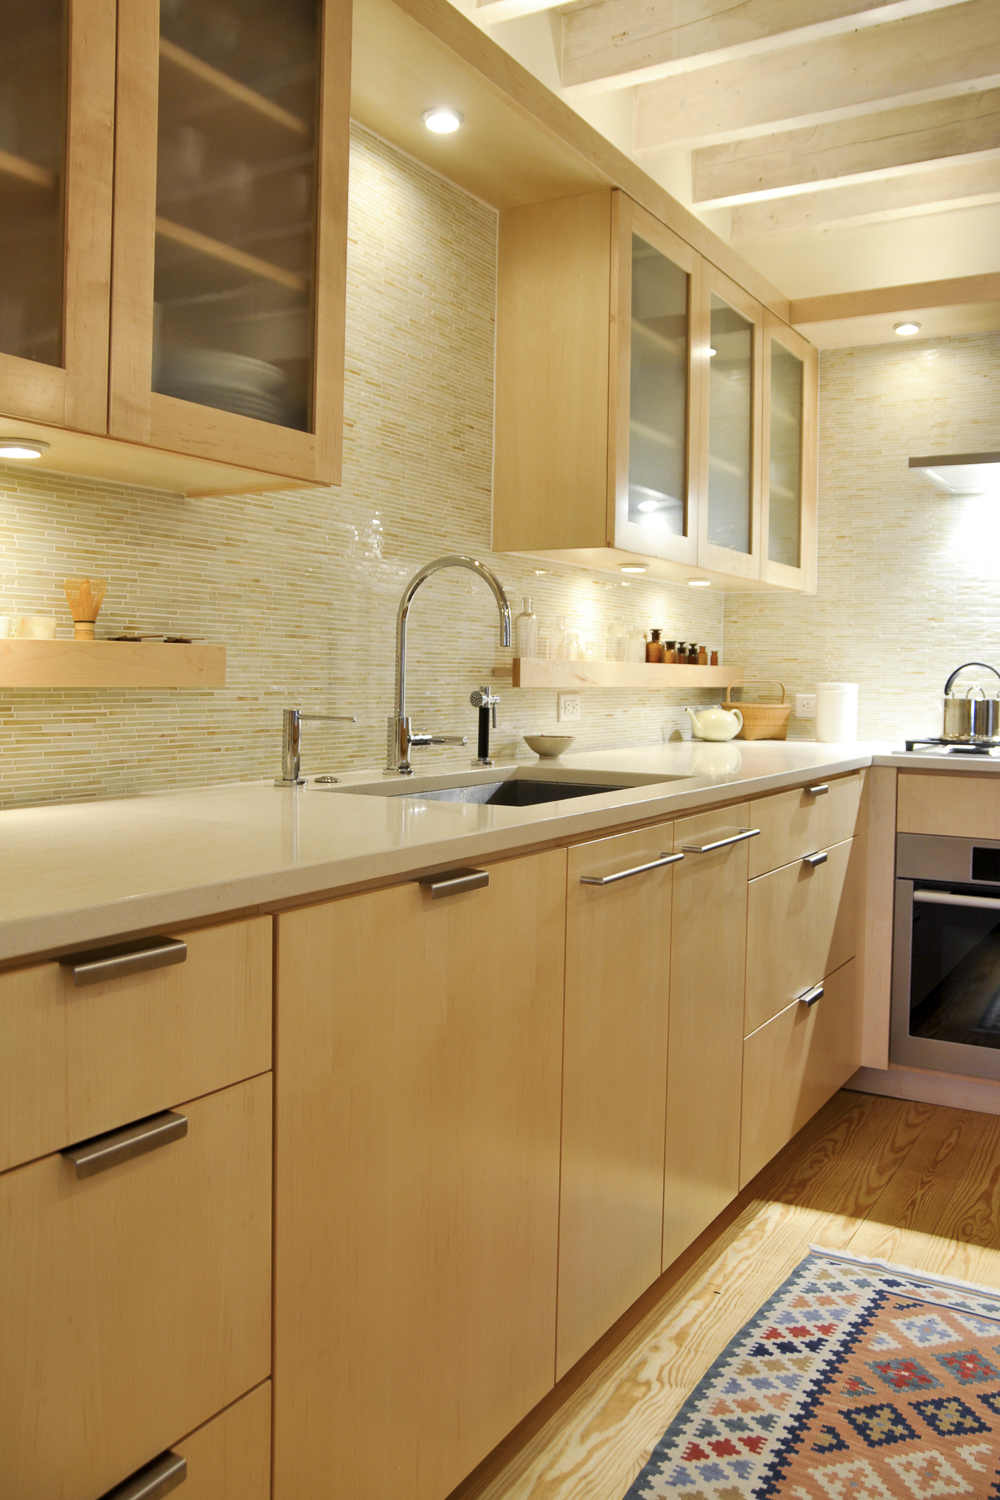 lombard_kitchen-3.jpg